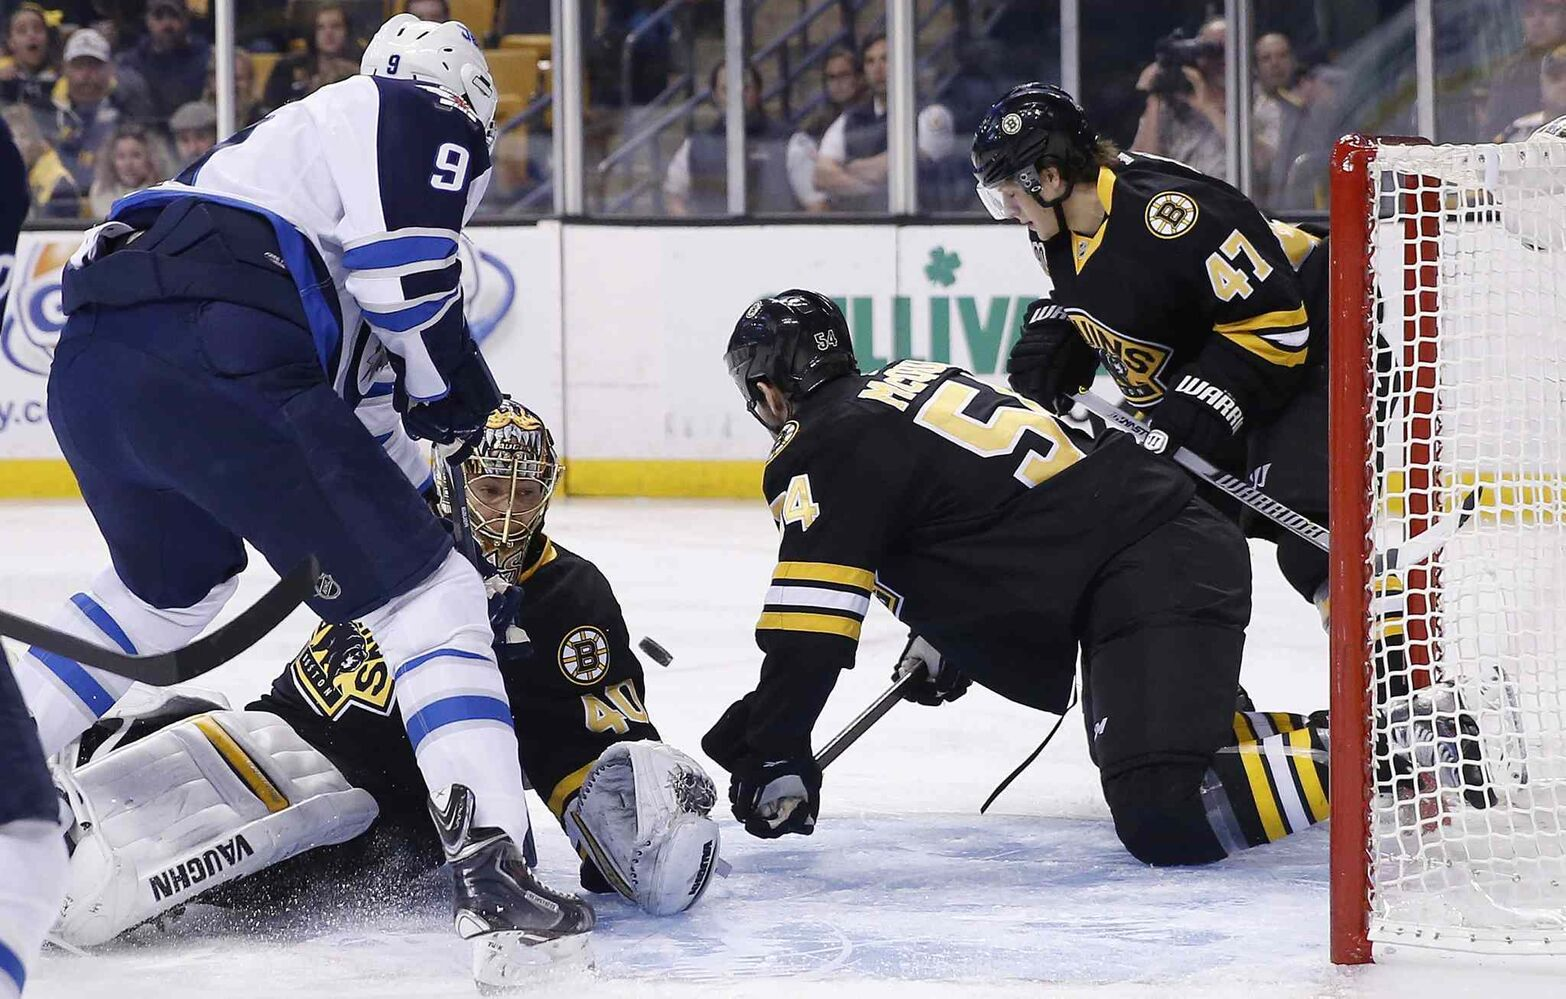 Winnipeg Jets' Evander Kane (9) looks for the rebound as the puck deflects off of Boston Bruins' Tuukka Rask (40) while the Bruins' Adam McQuaid (54) and Torey Krug (47) defend in the first period. (Michael Dwyer / The Associated Press)